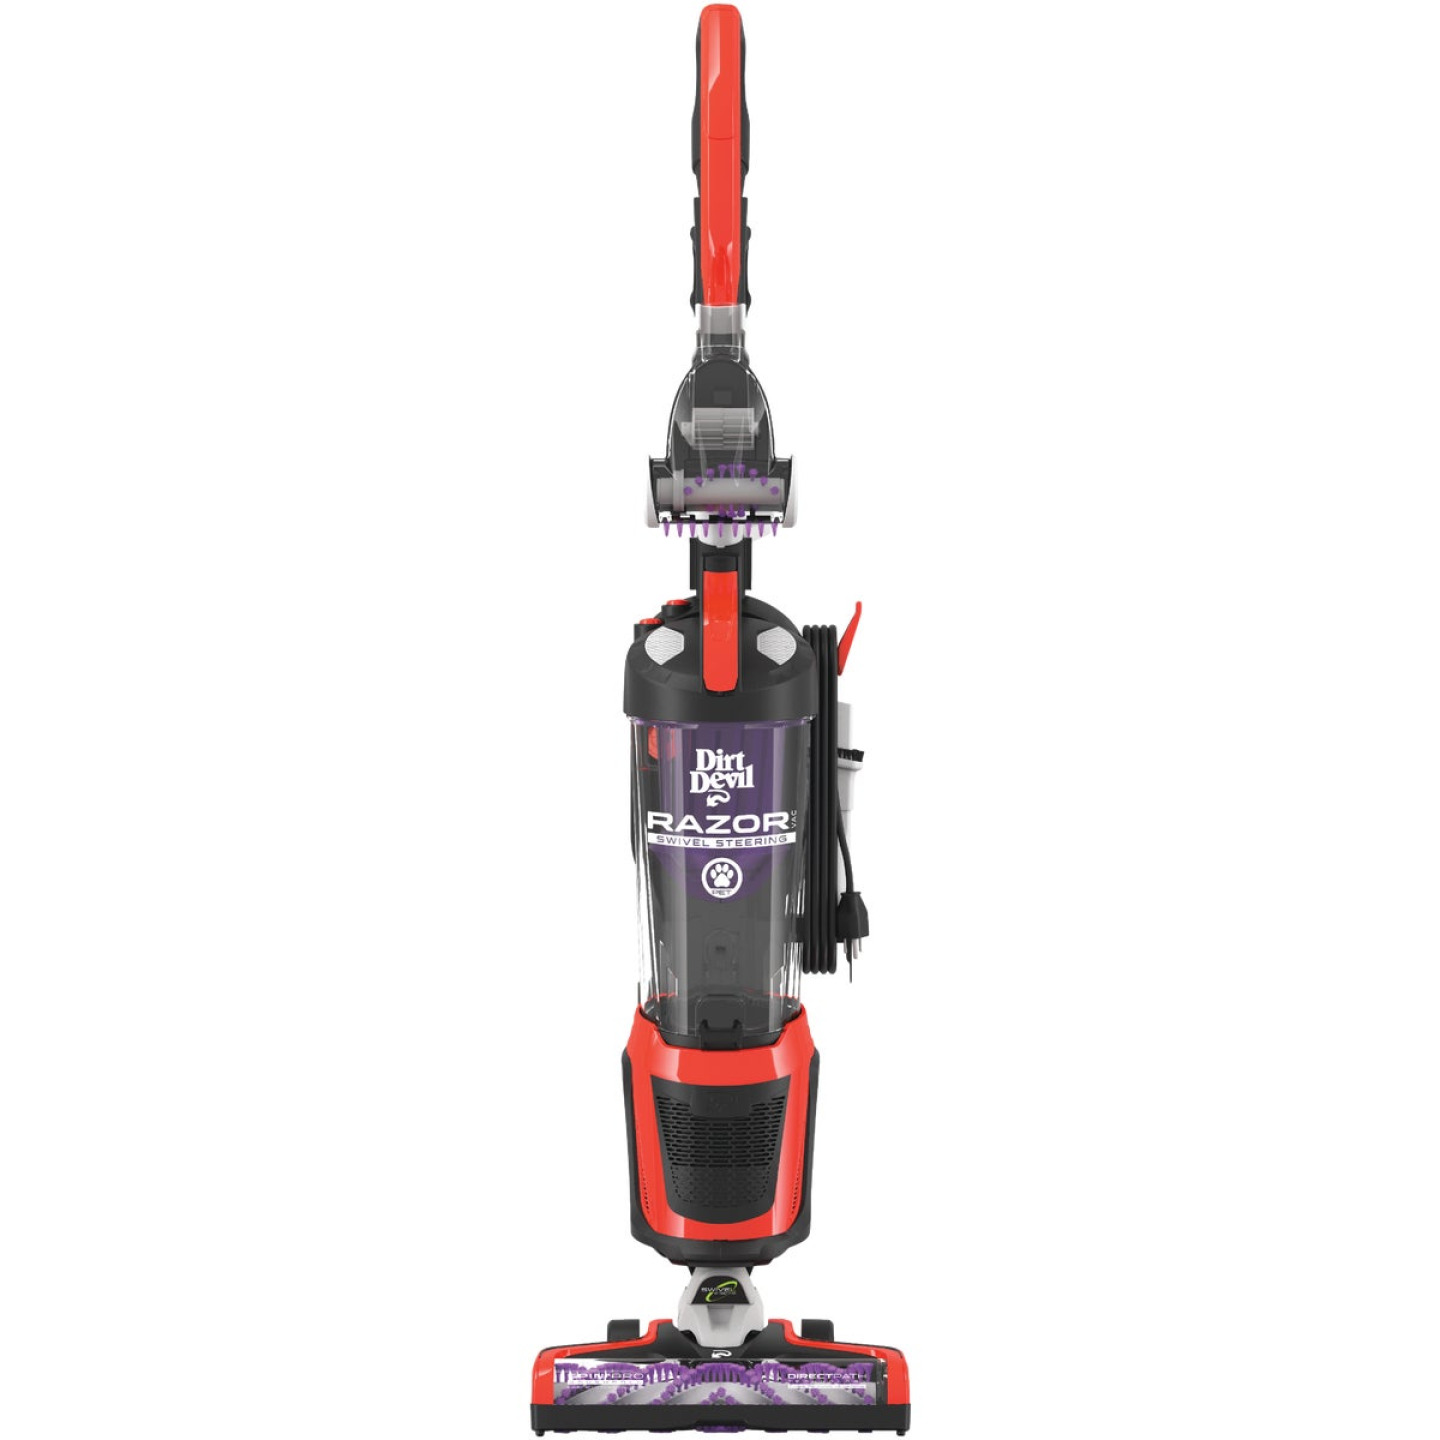 Dirt Devil Razor Pet w/Turbo Tool Upright Vacuum Cleaner Image 1